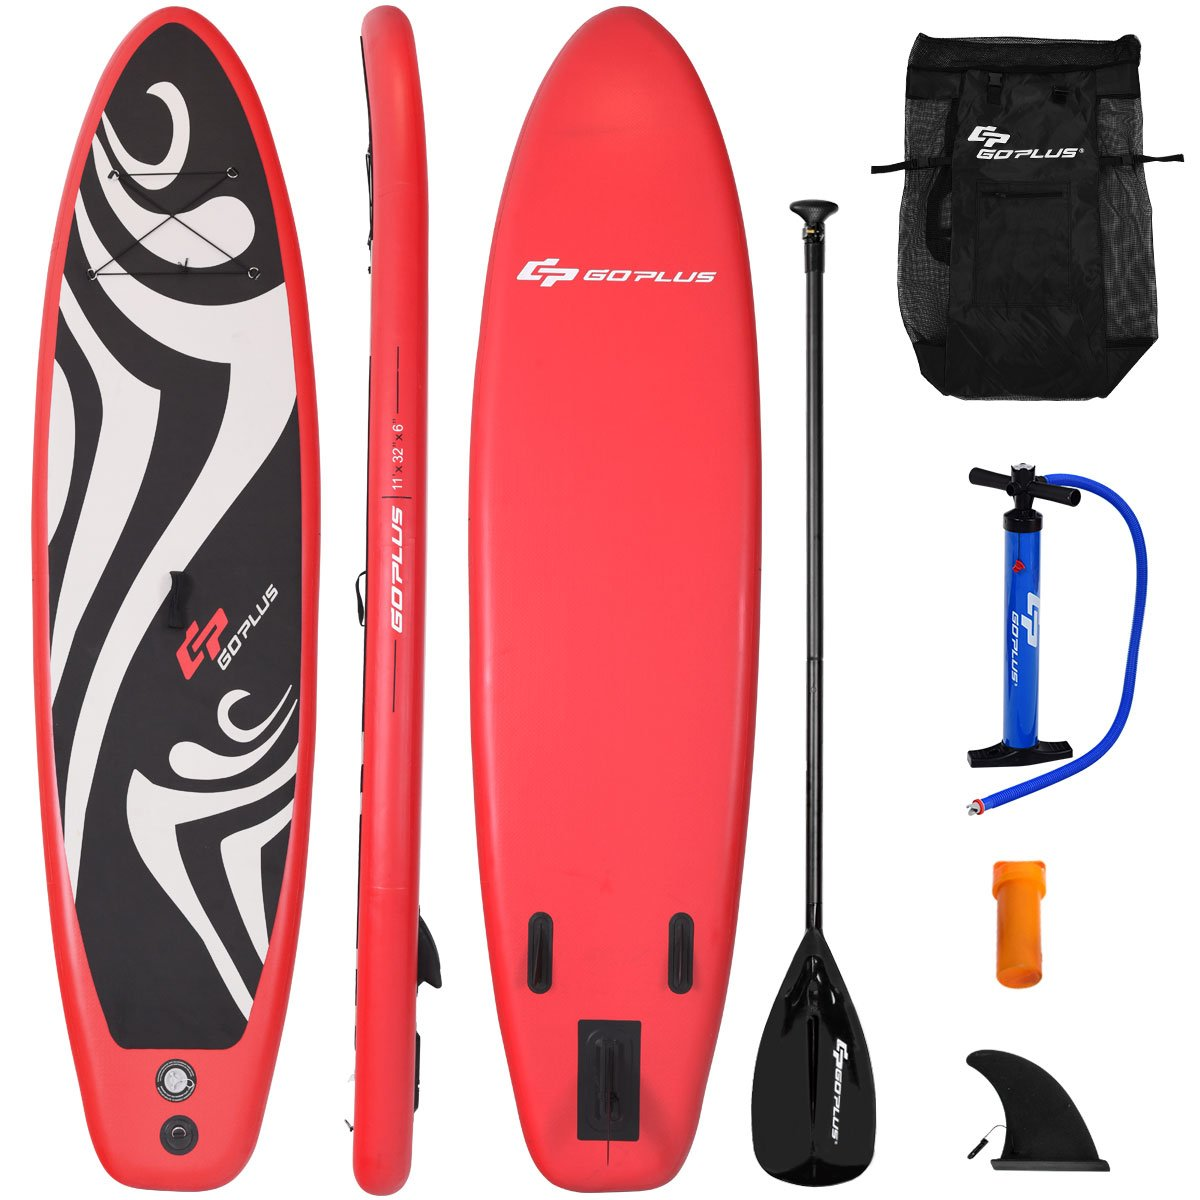 Goplus Inflatable Stand up Paddle Board Surfboard SUP Board with Adjustable Paddle Carry Bag Manual Pump Repair Kit Removable Fin for All Skill Levels, 6'' Thick (Red, 11 FT)